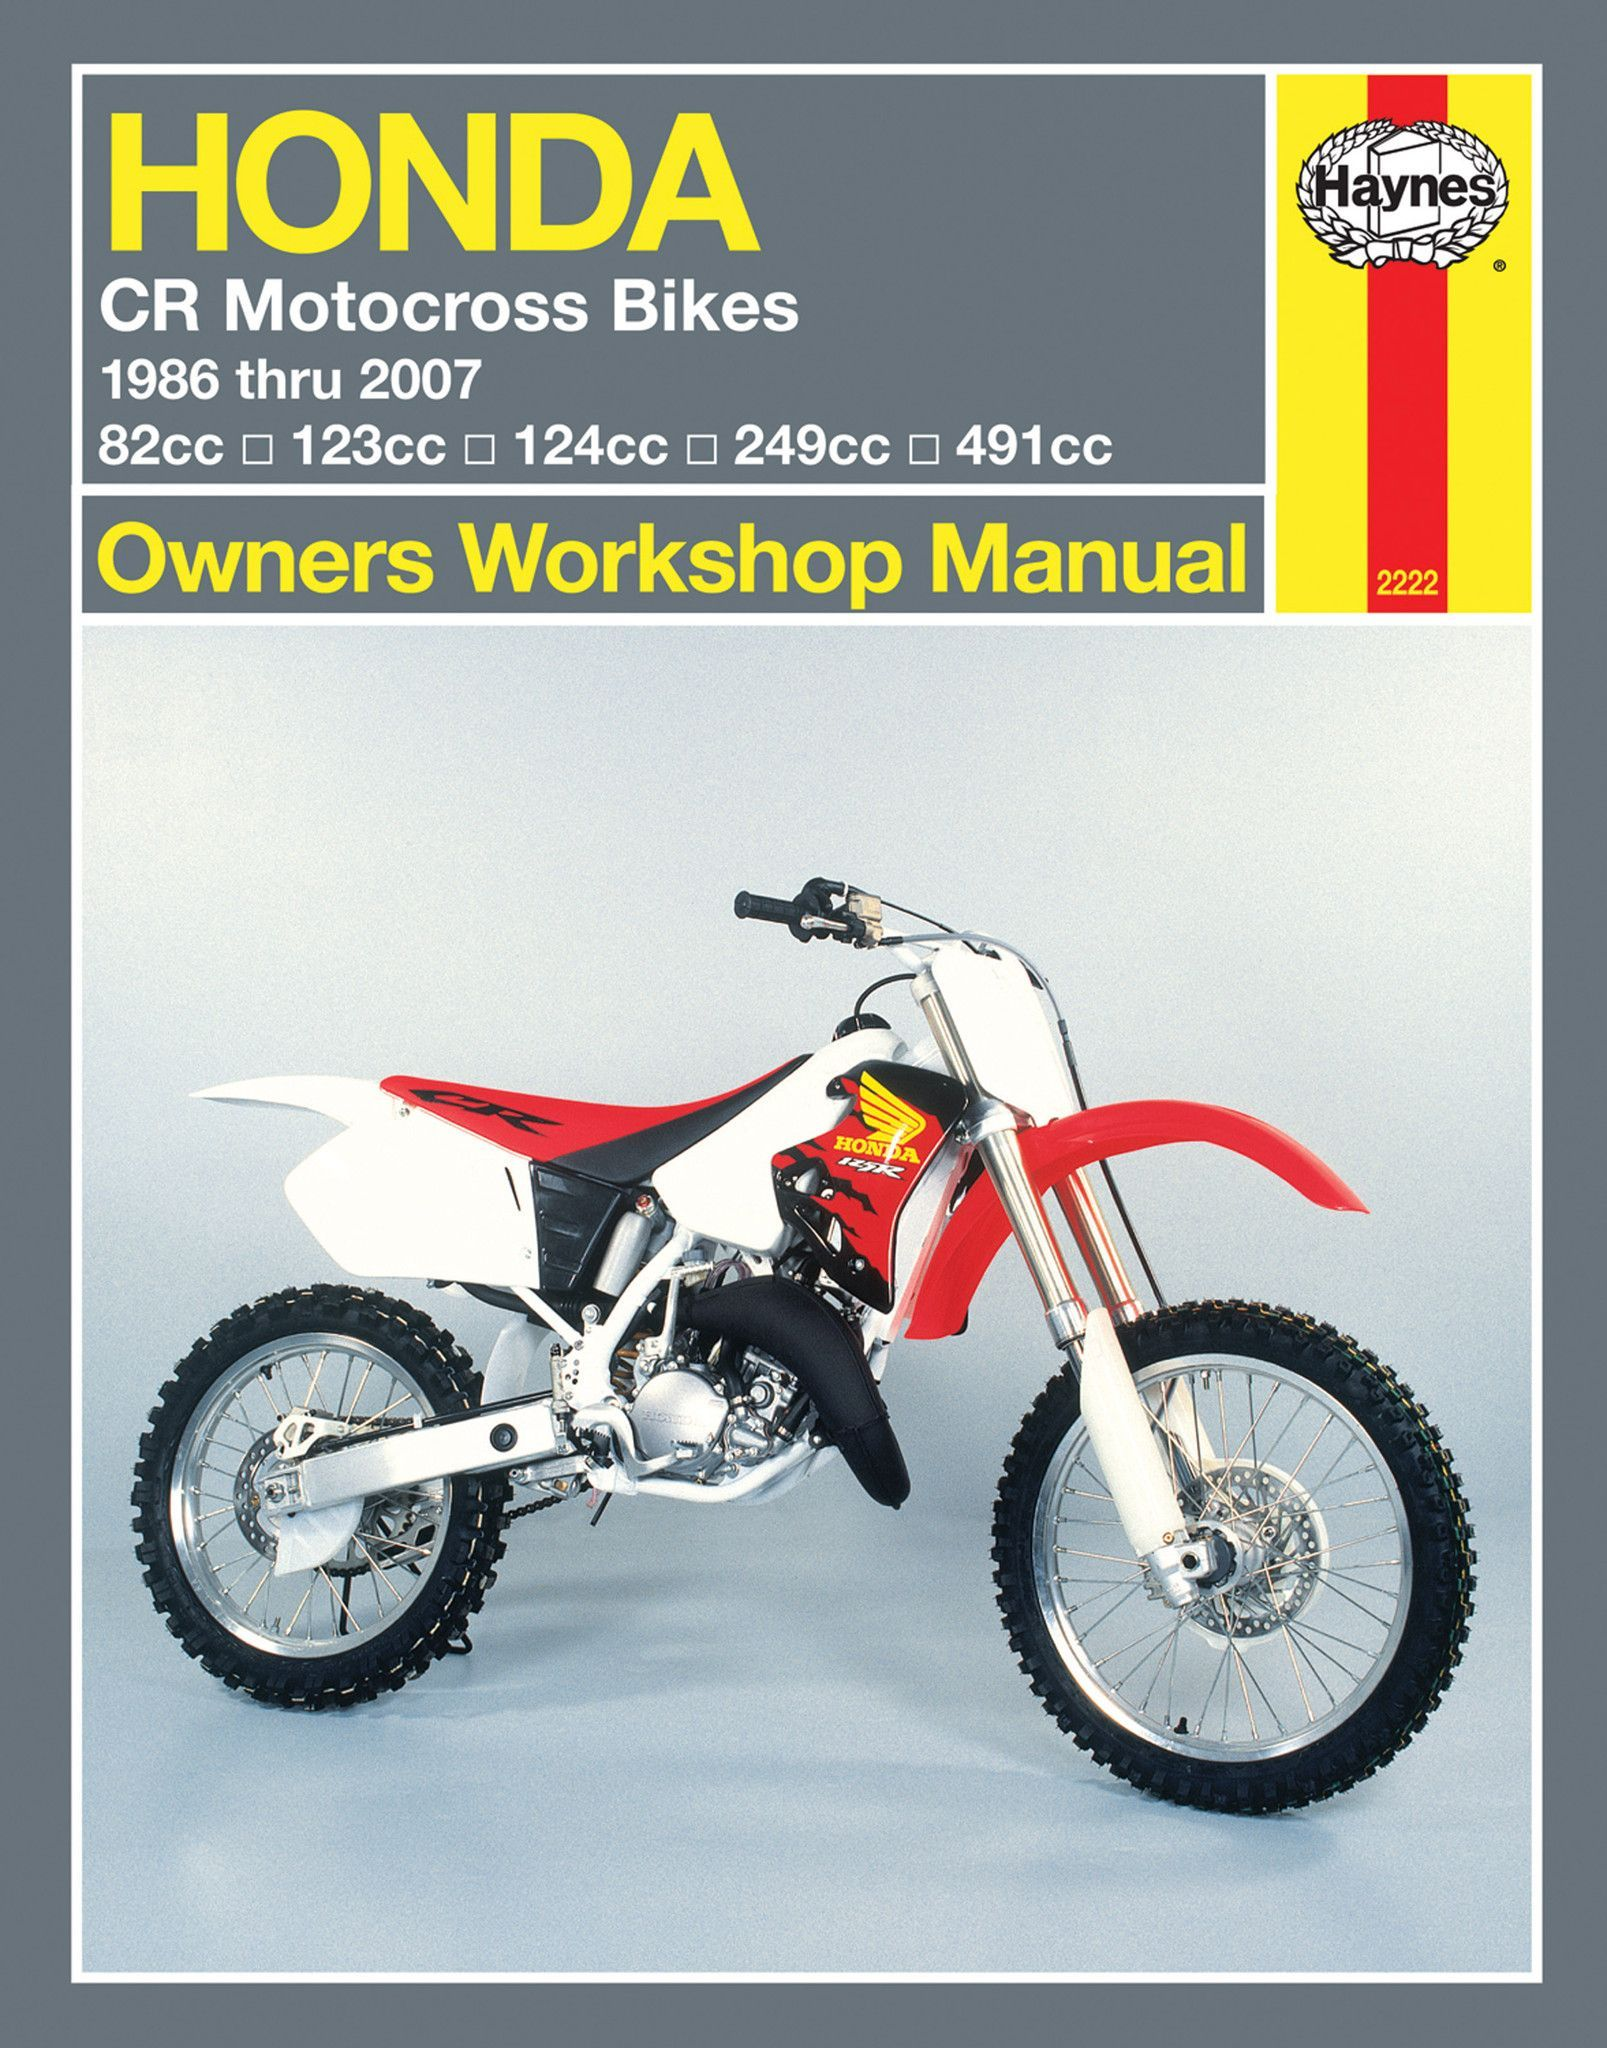 Haynes m2222 repair manual for 1986 07 honda cr80 cr125r cr250r haynes service repair manual part number m2222 step by step procedures easy to follow photos complete troubleshooting section valuable short cuts fandeluxe Image collections